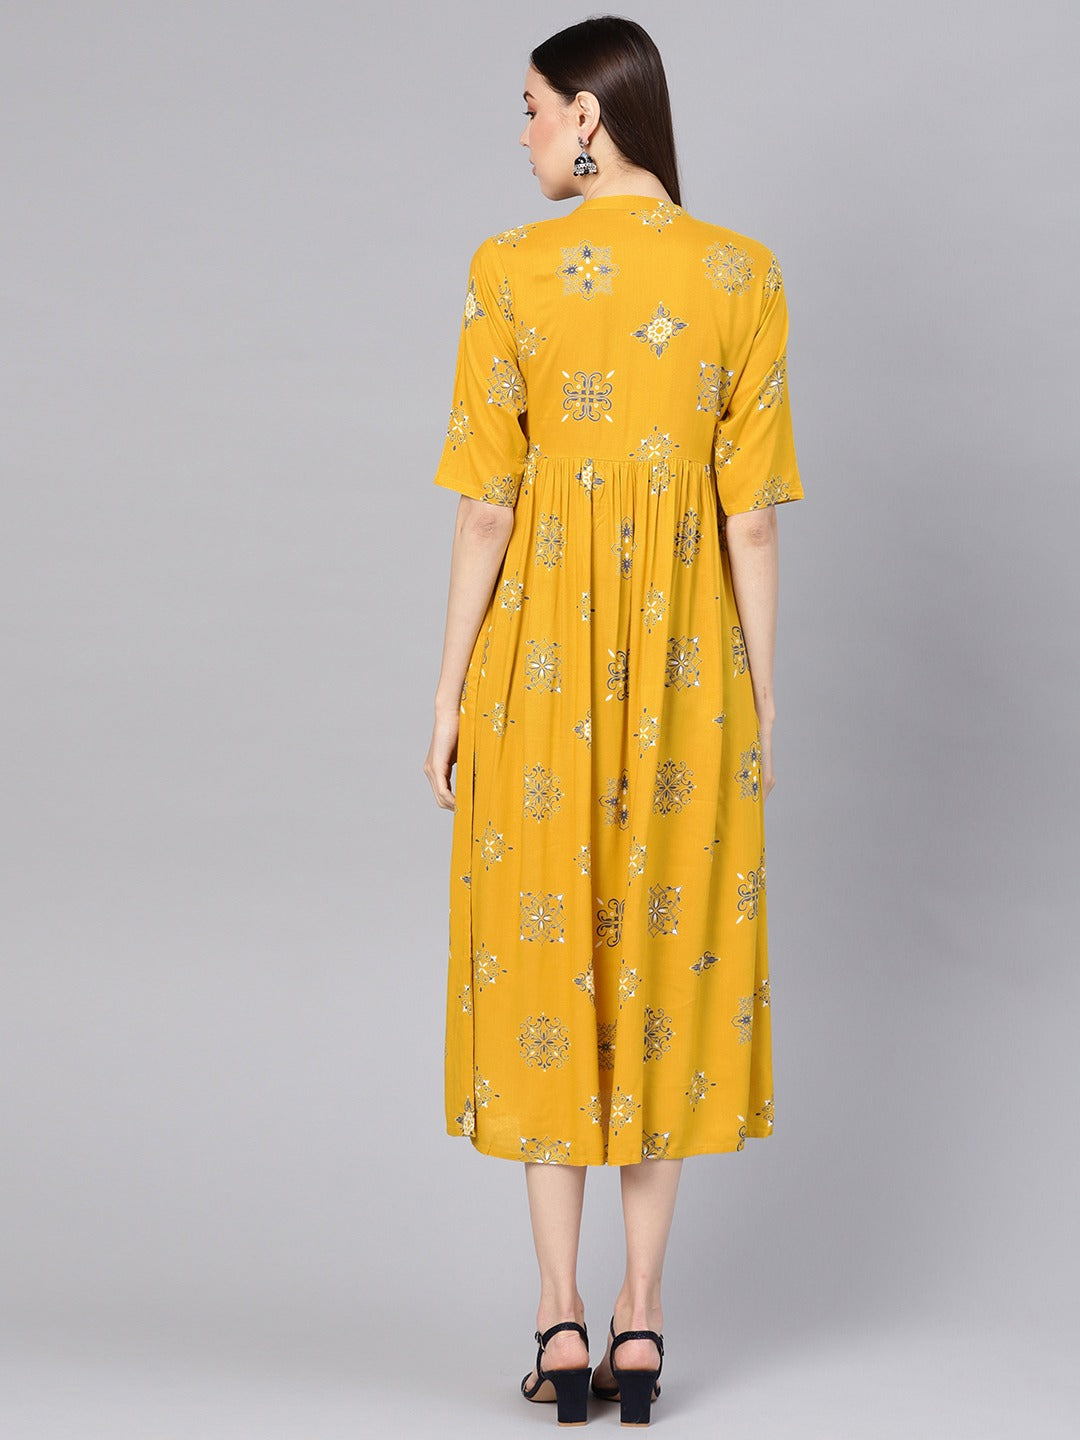 Mustard Yellow & Blue Printed Midi A-Line Dress